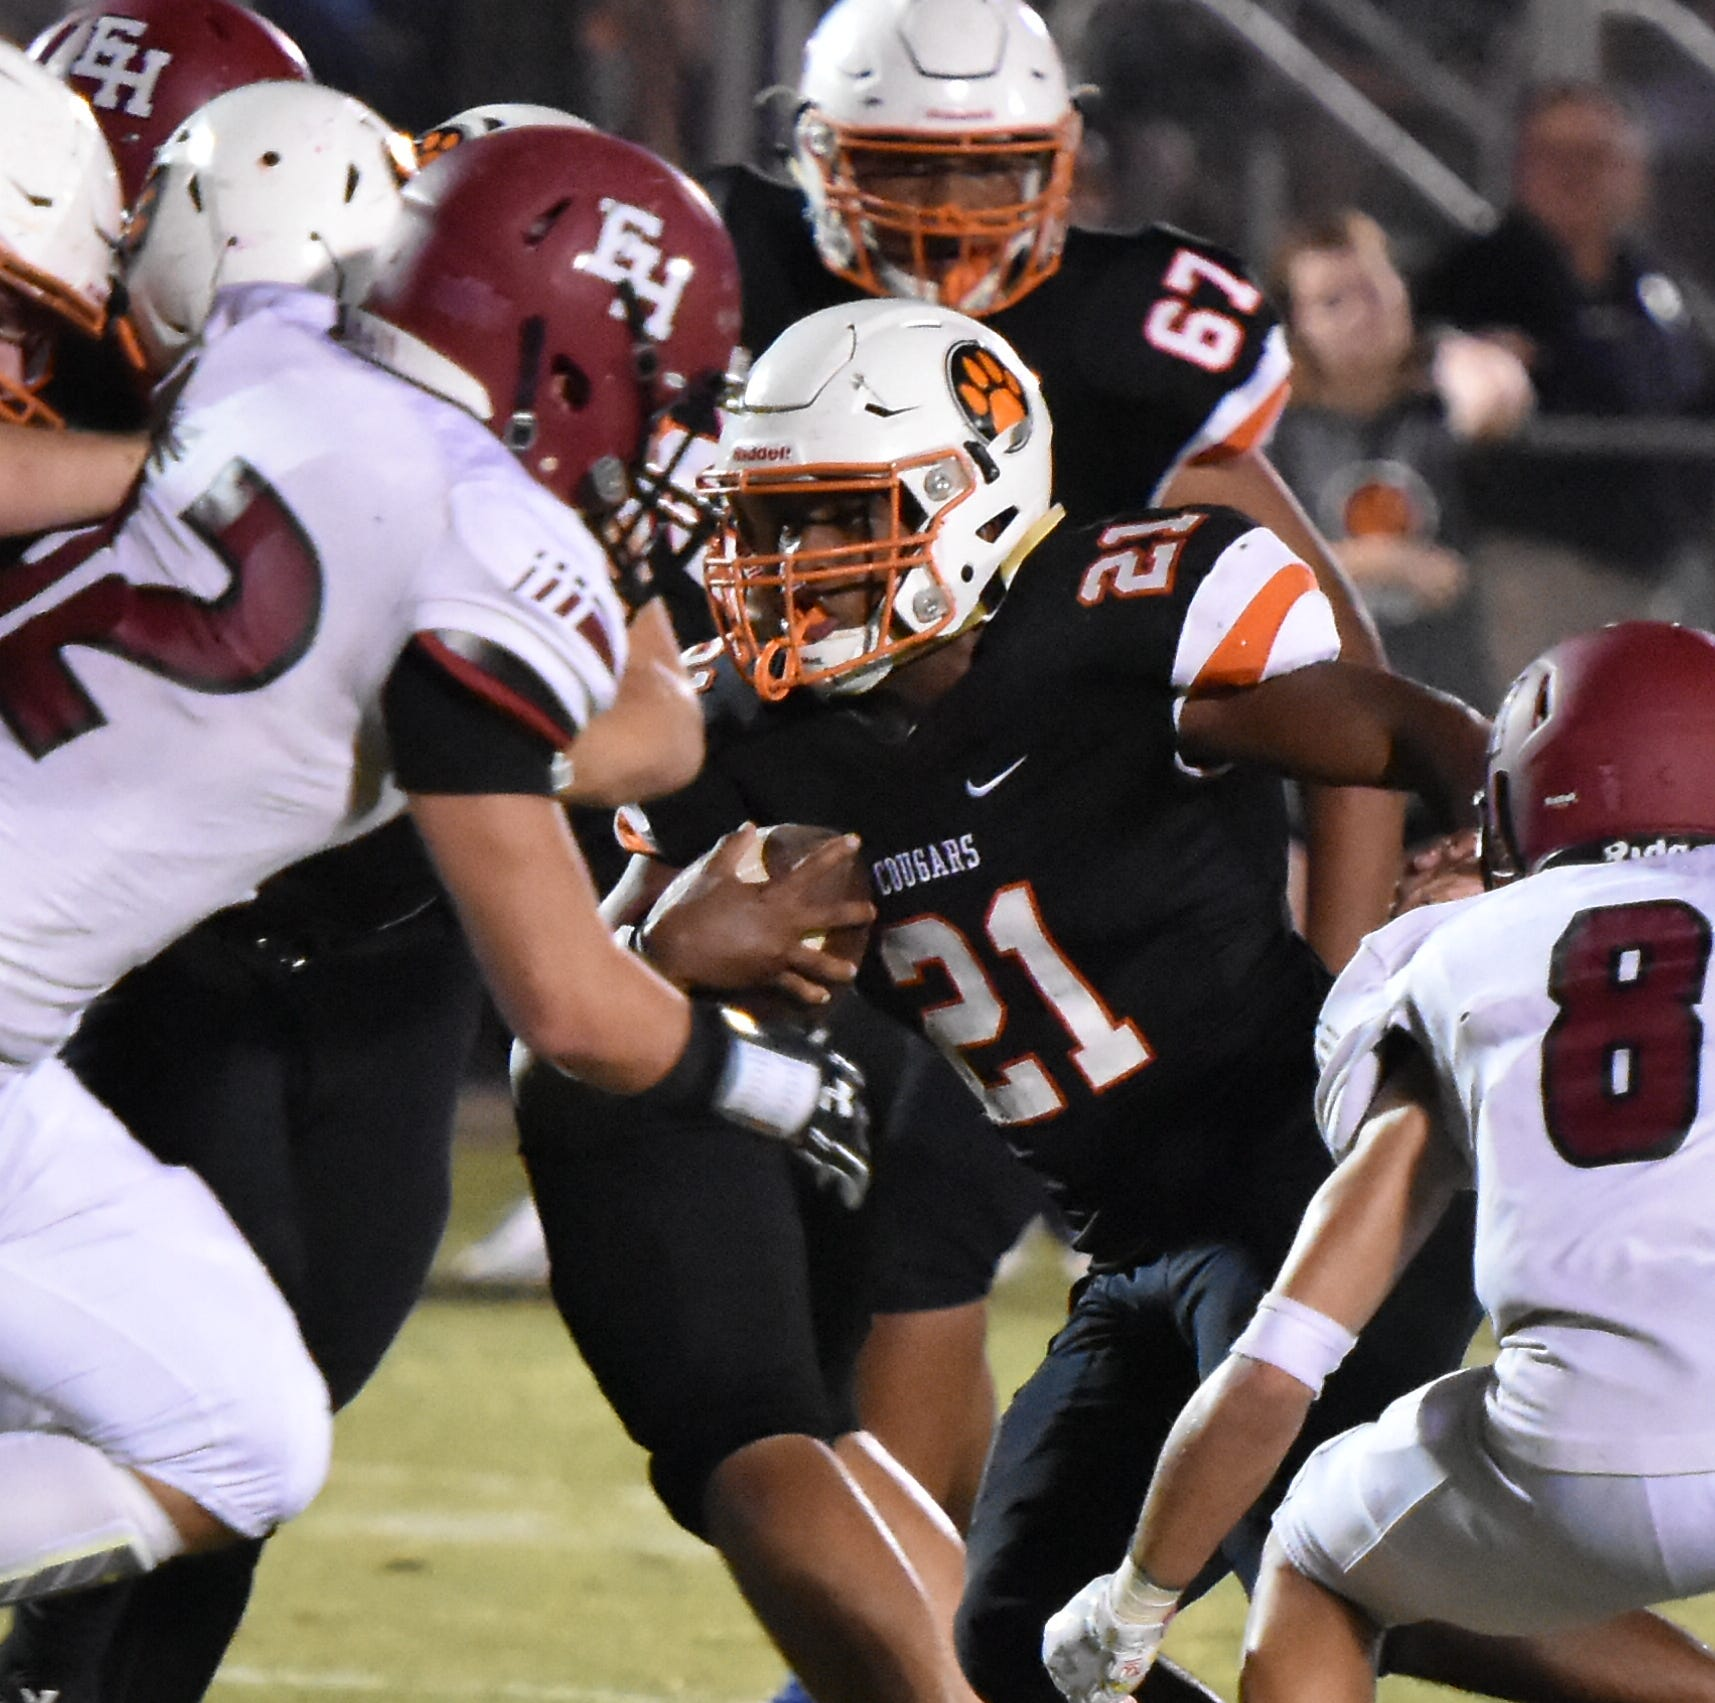 MTCS running back Kemari McGowan rushes against Ezell-Harding Friday night.